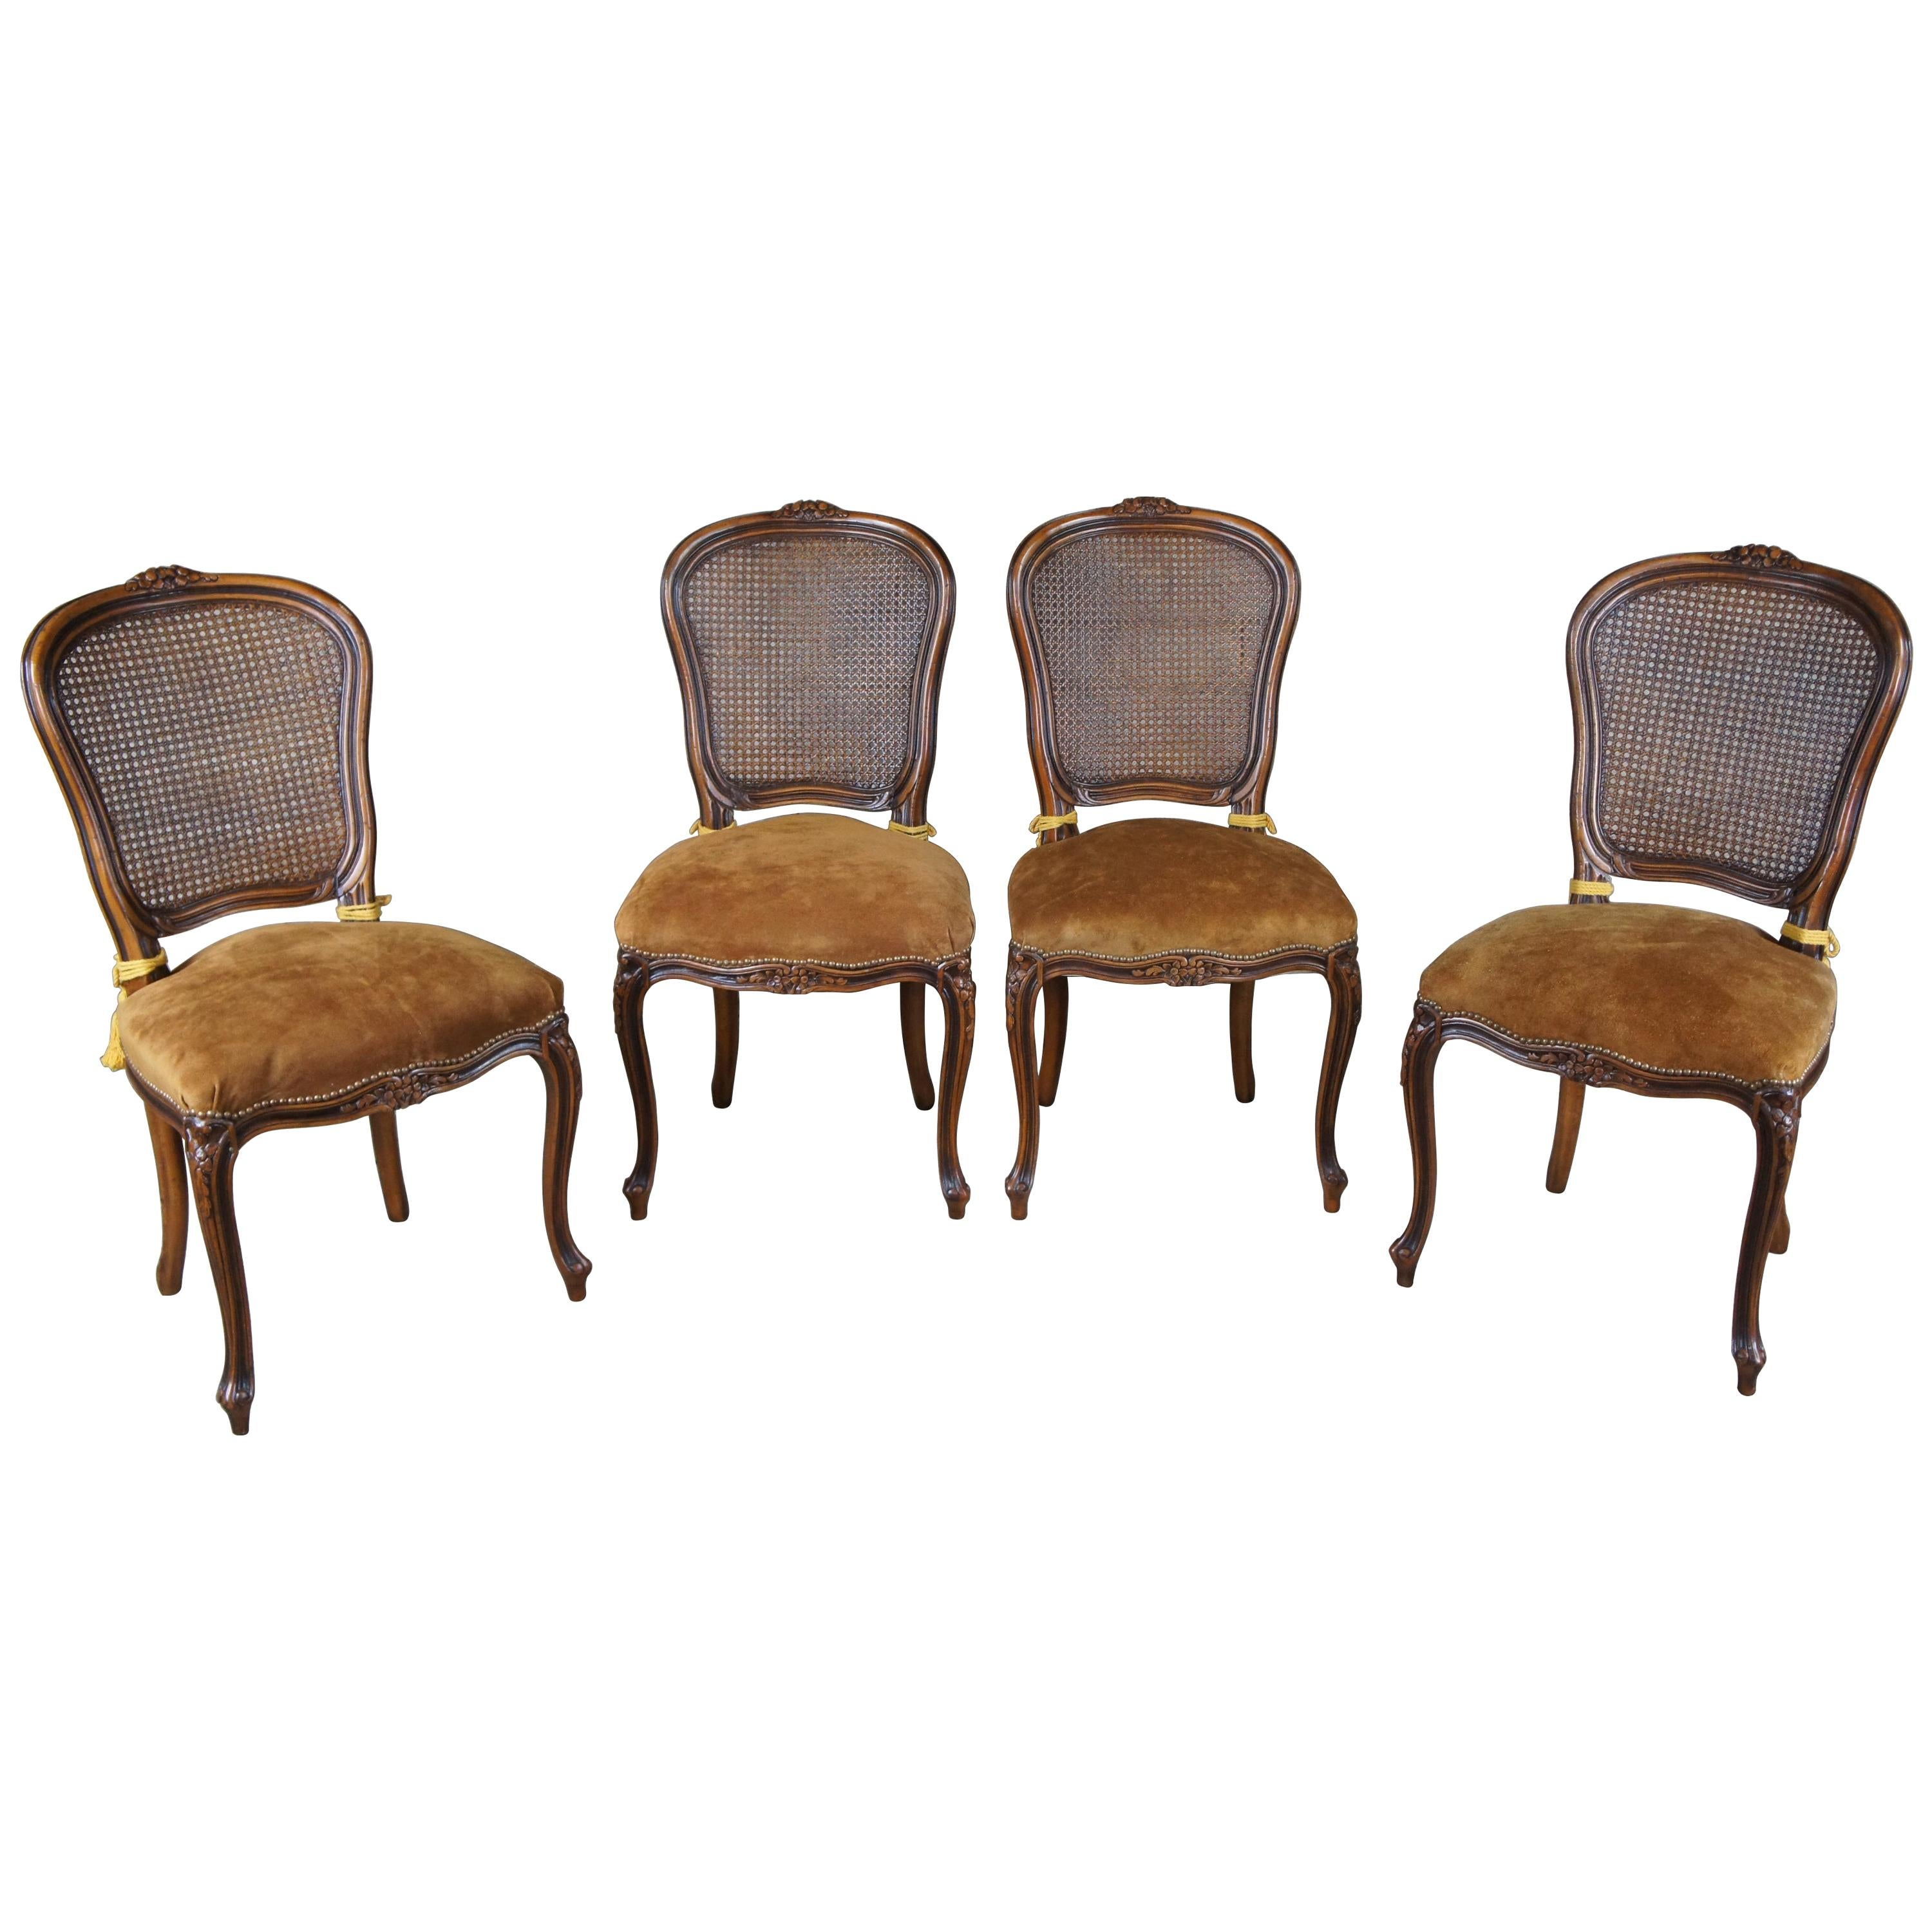 4 Chateau d'Ax French Louis XV Caned Suede Nailhead Side Dining Chairs Italian